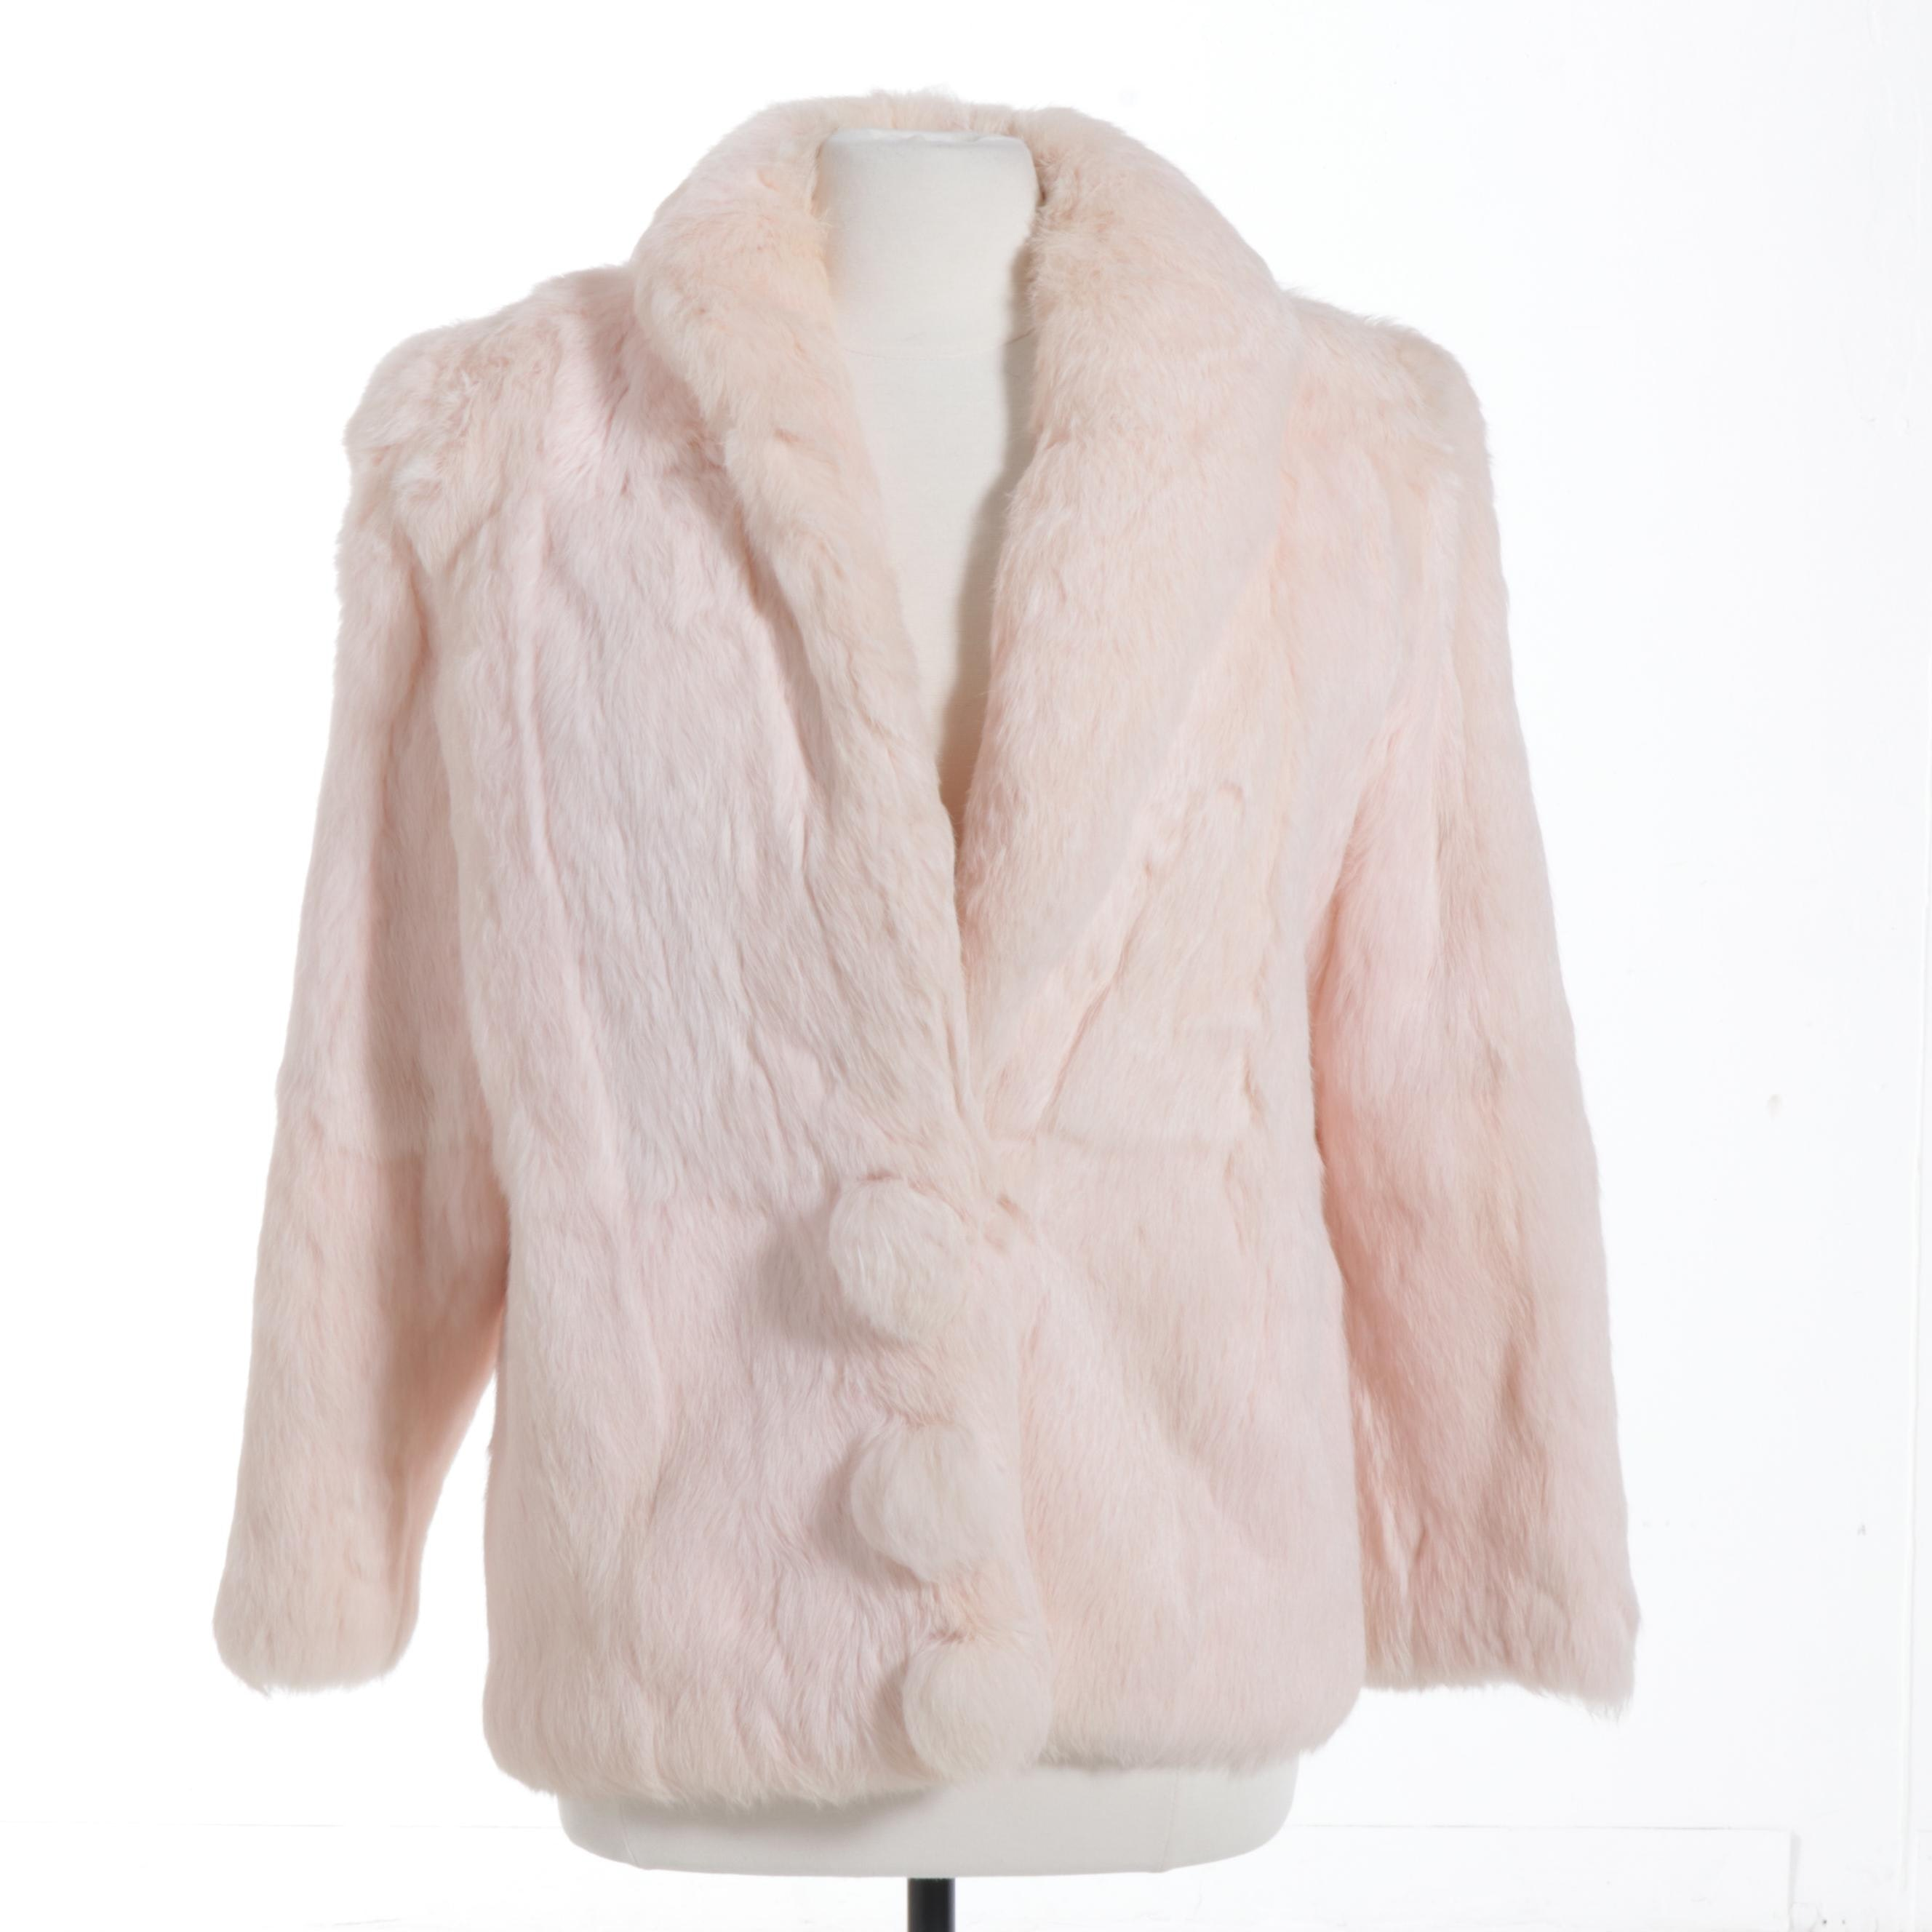 Pink Dyed Rabbit Fur Coat with Satin Lining